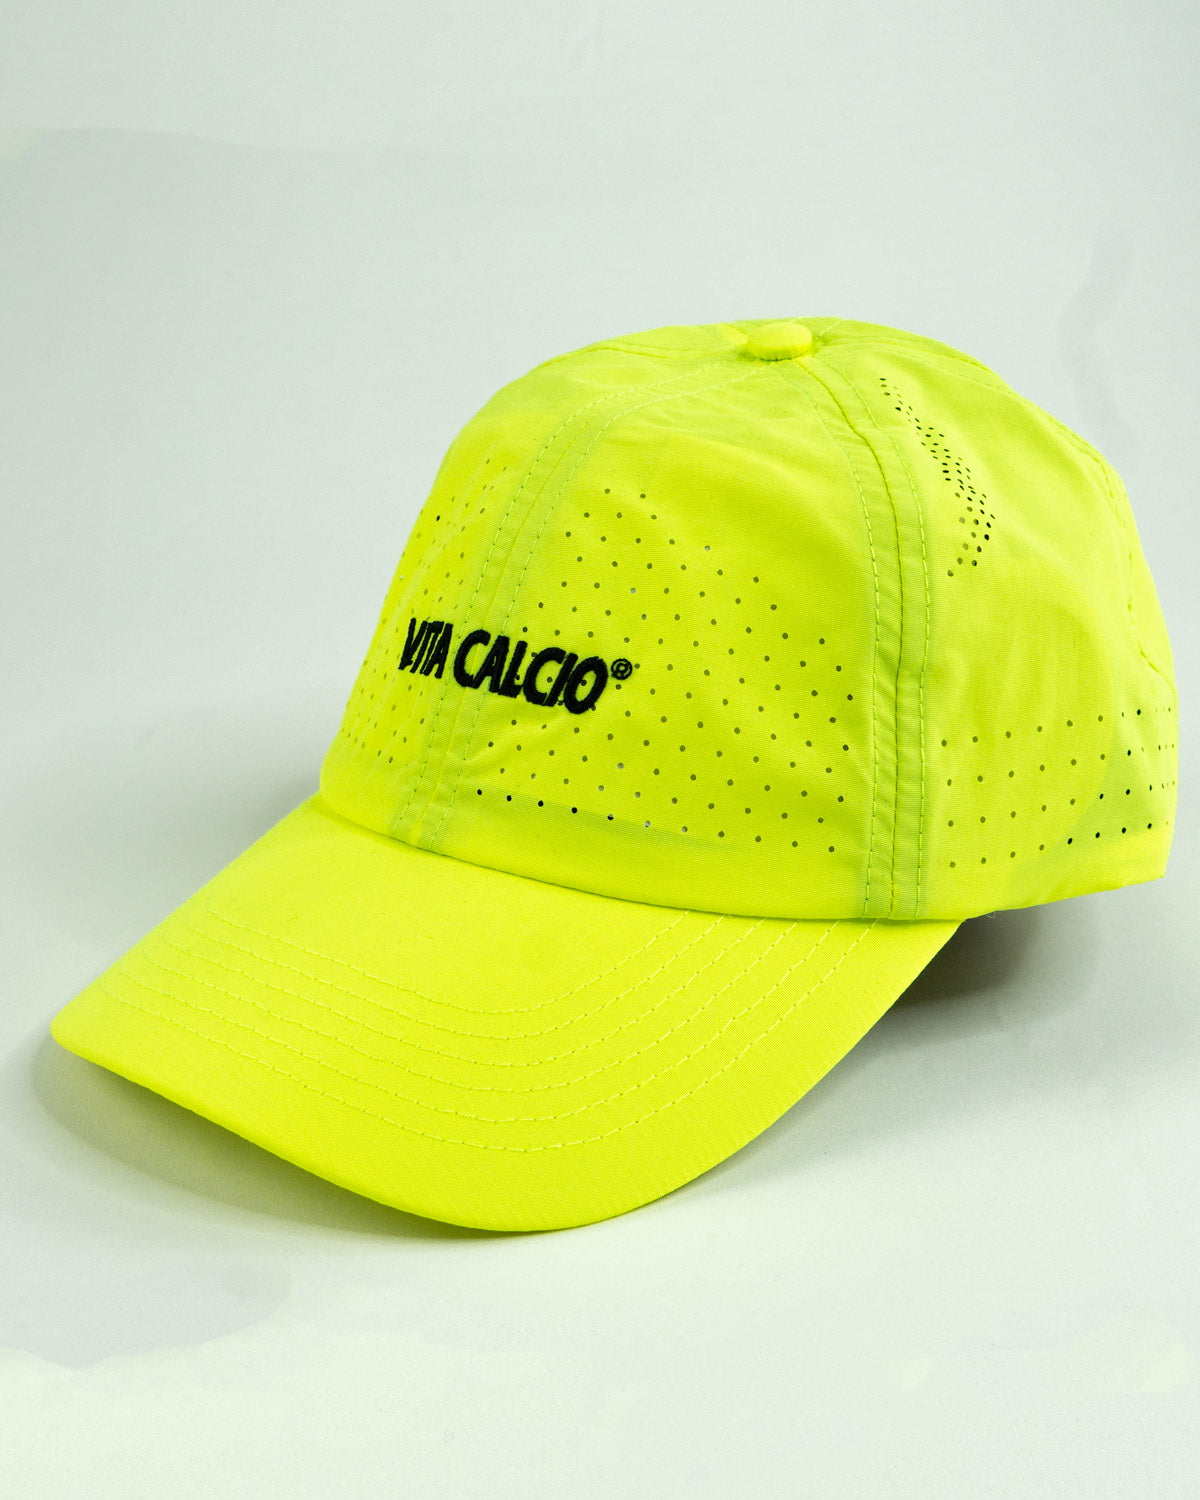 VITA CALCIO® Limoncello Runner Hat